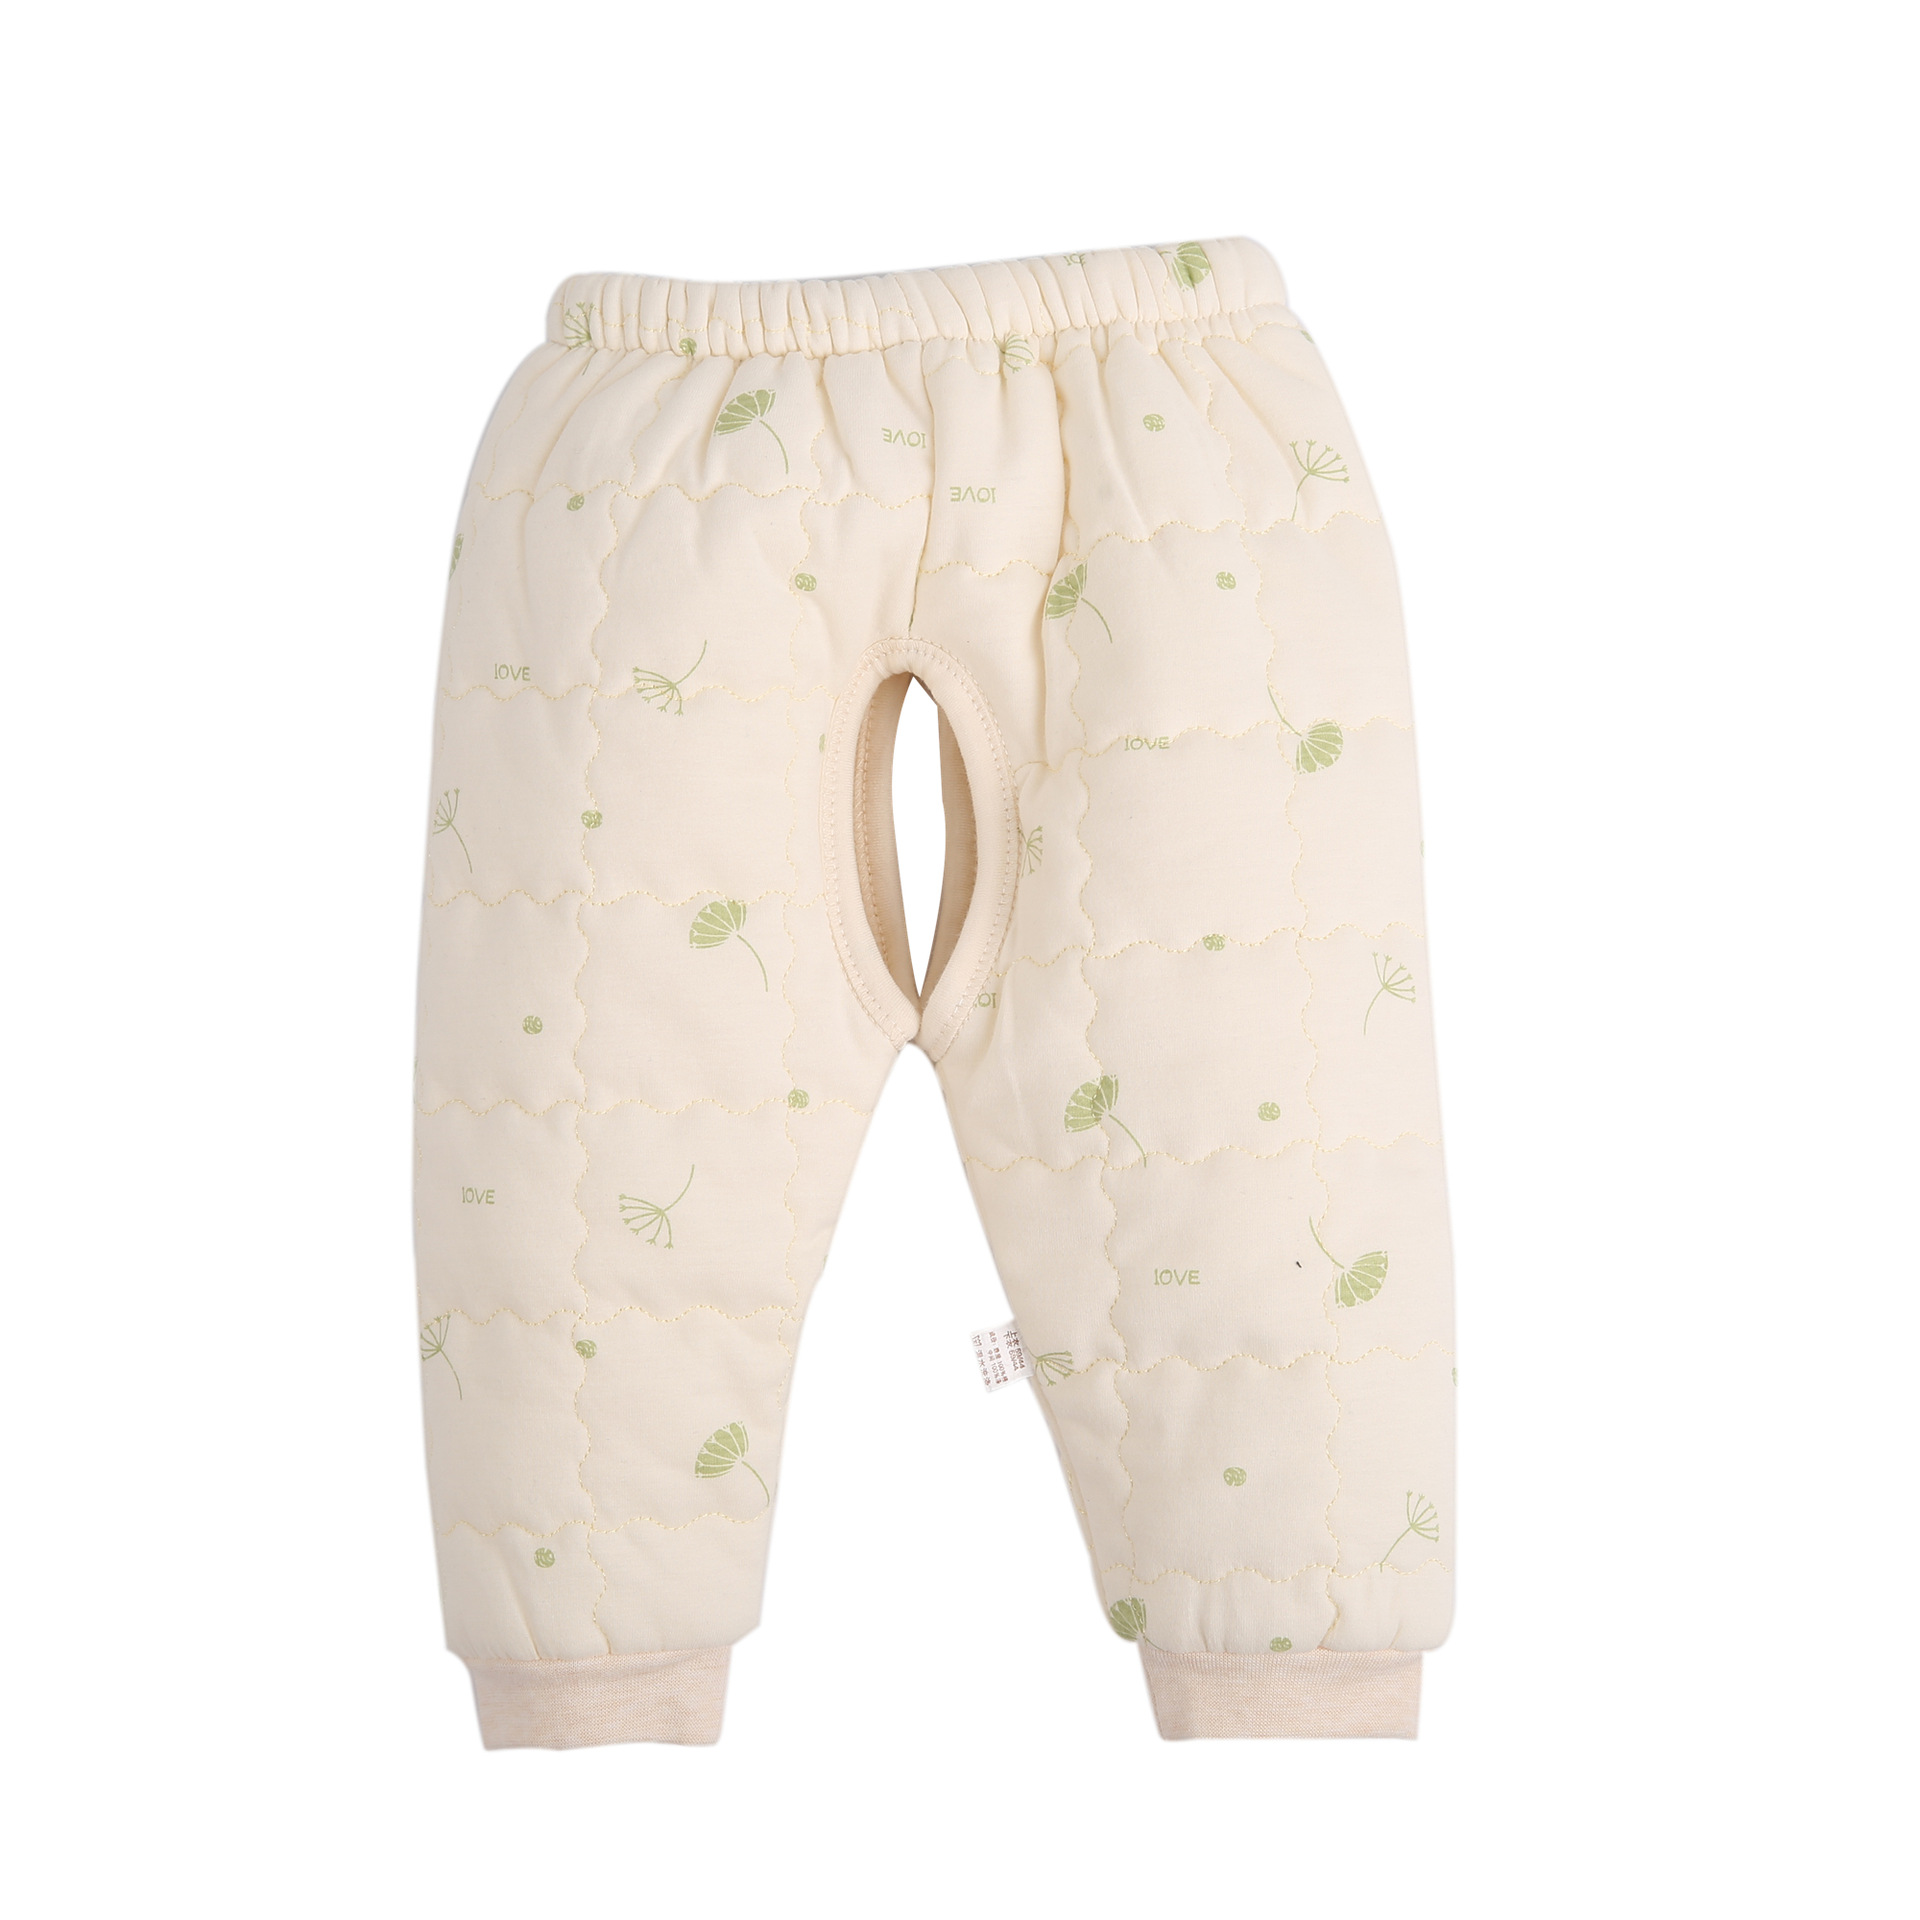 Baby thermal underwear quilted slanting front lace up cotton padded